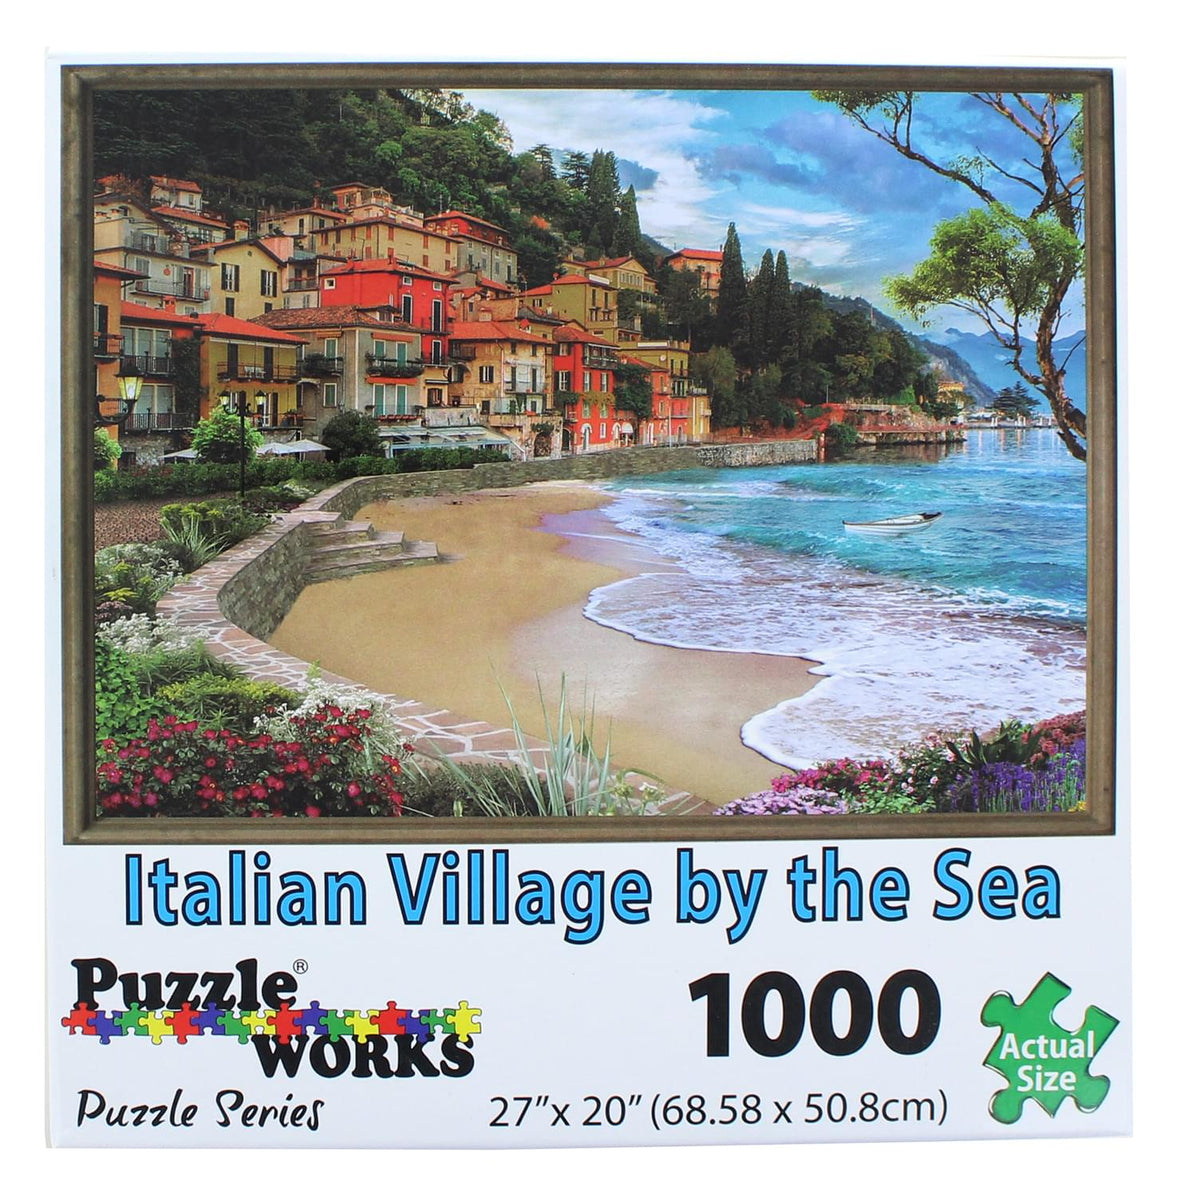 PuzzleWorks 1000 Piece Jigsaw Puzzle | Italian Village By The Sea